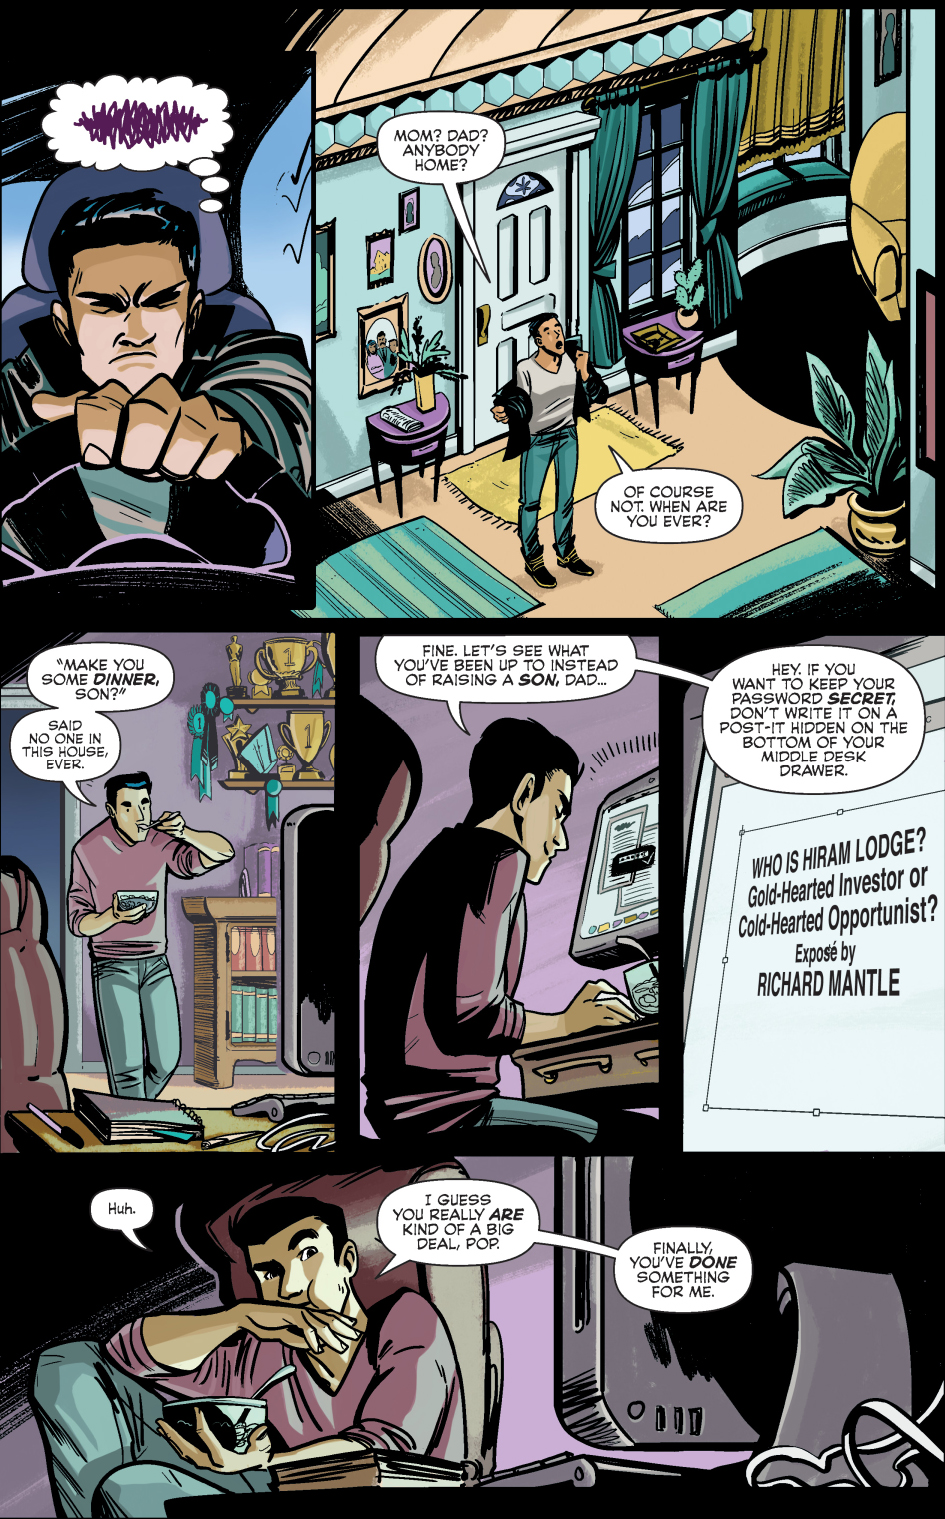 why reggie mantle sold out his dad